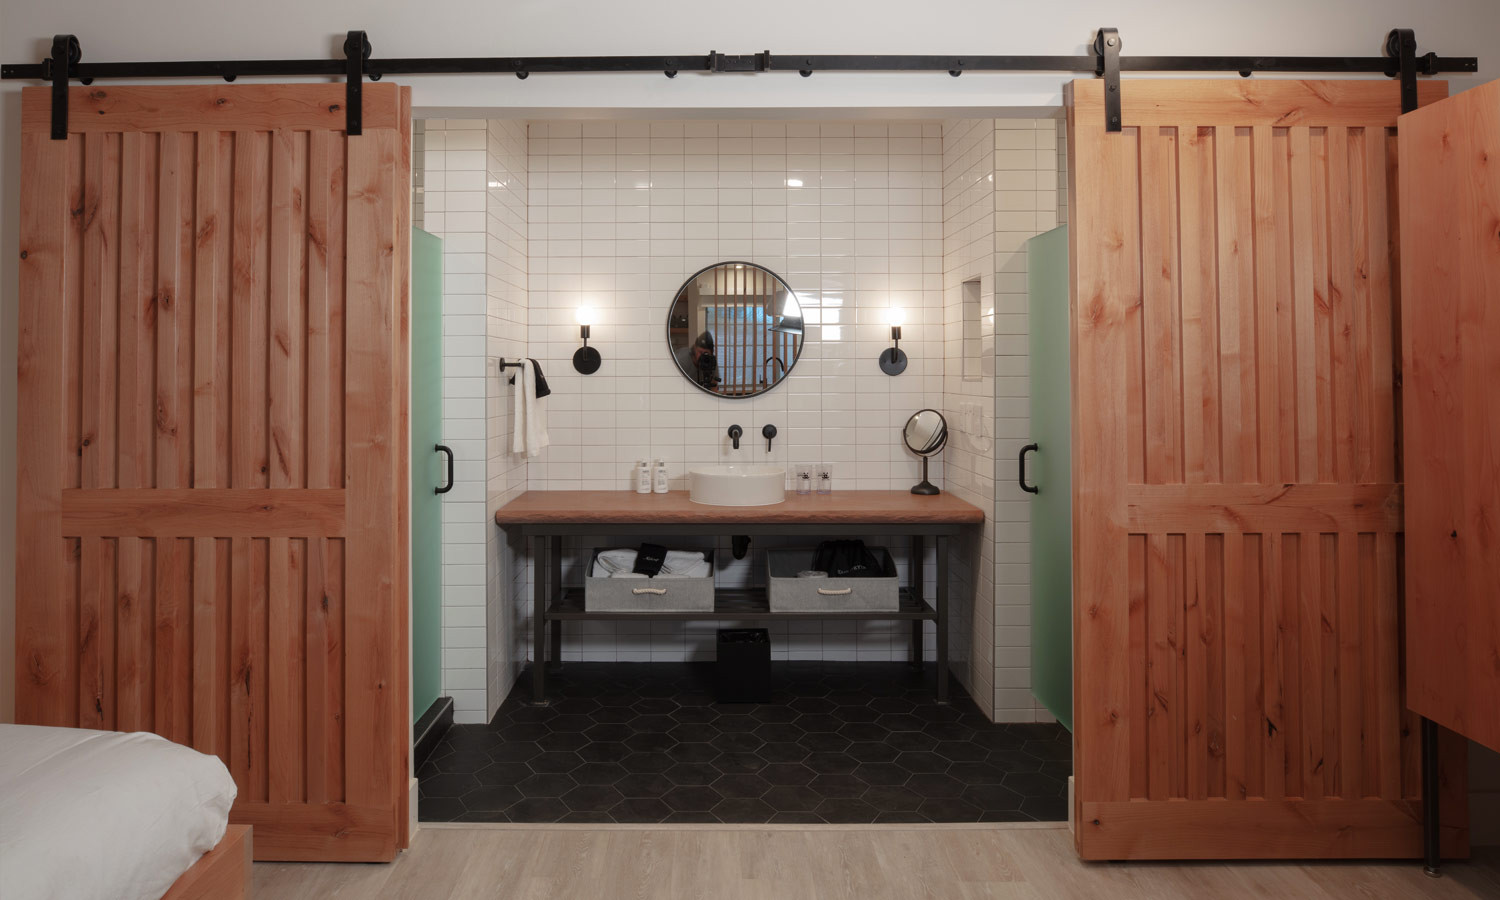 Standard Room: Standard bathroom with sliding barn doors for privacy